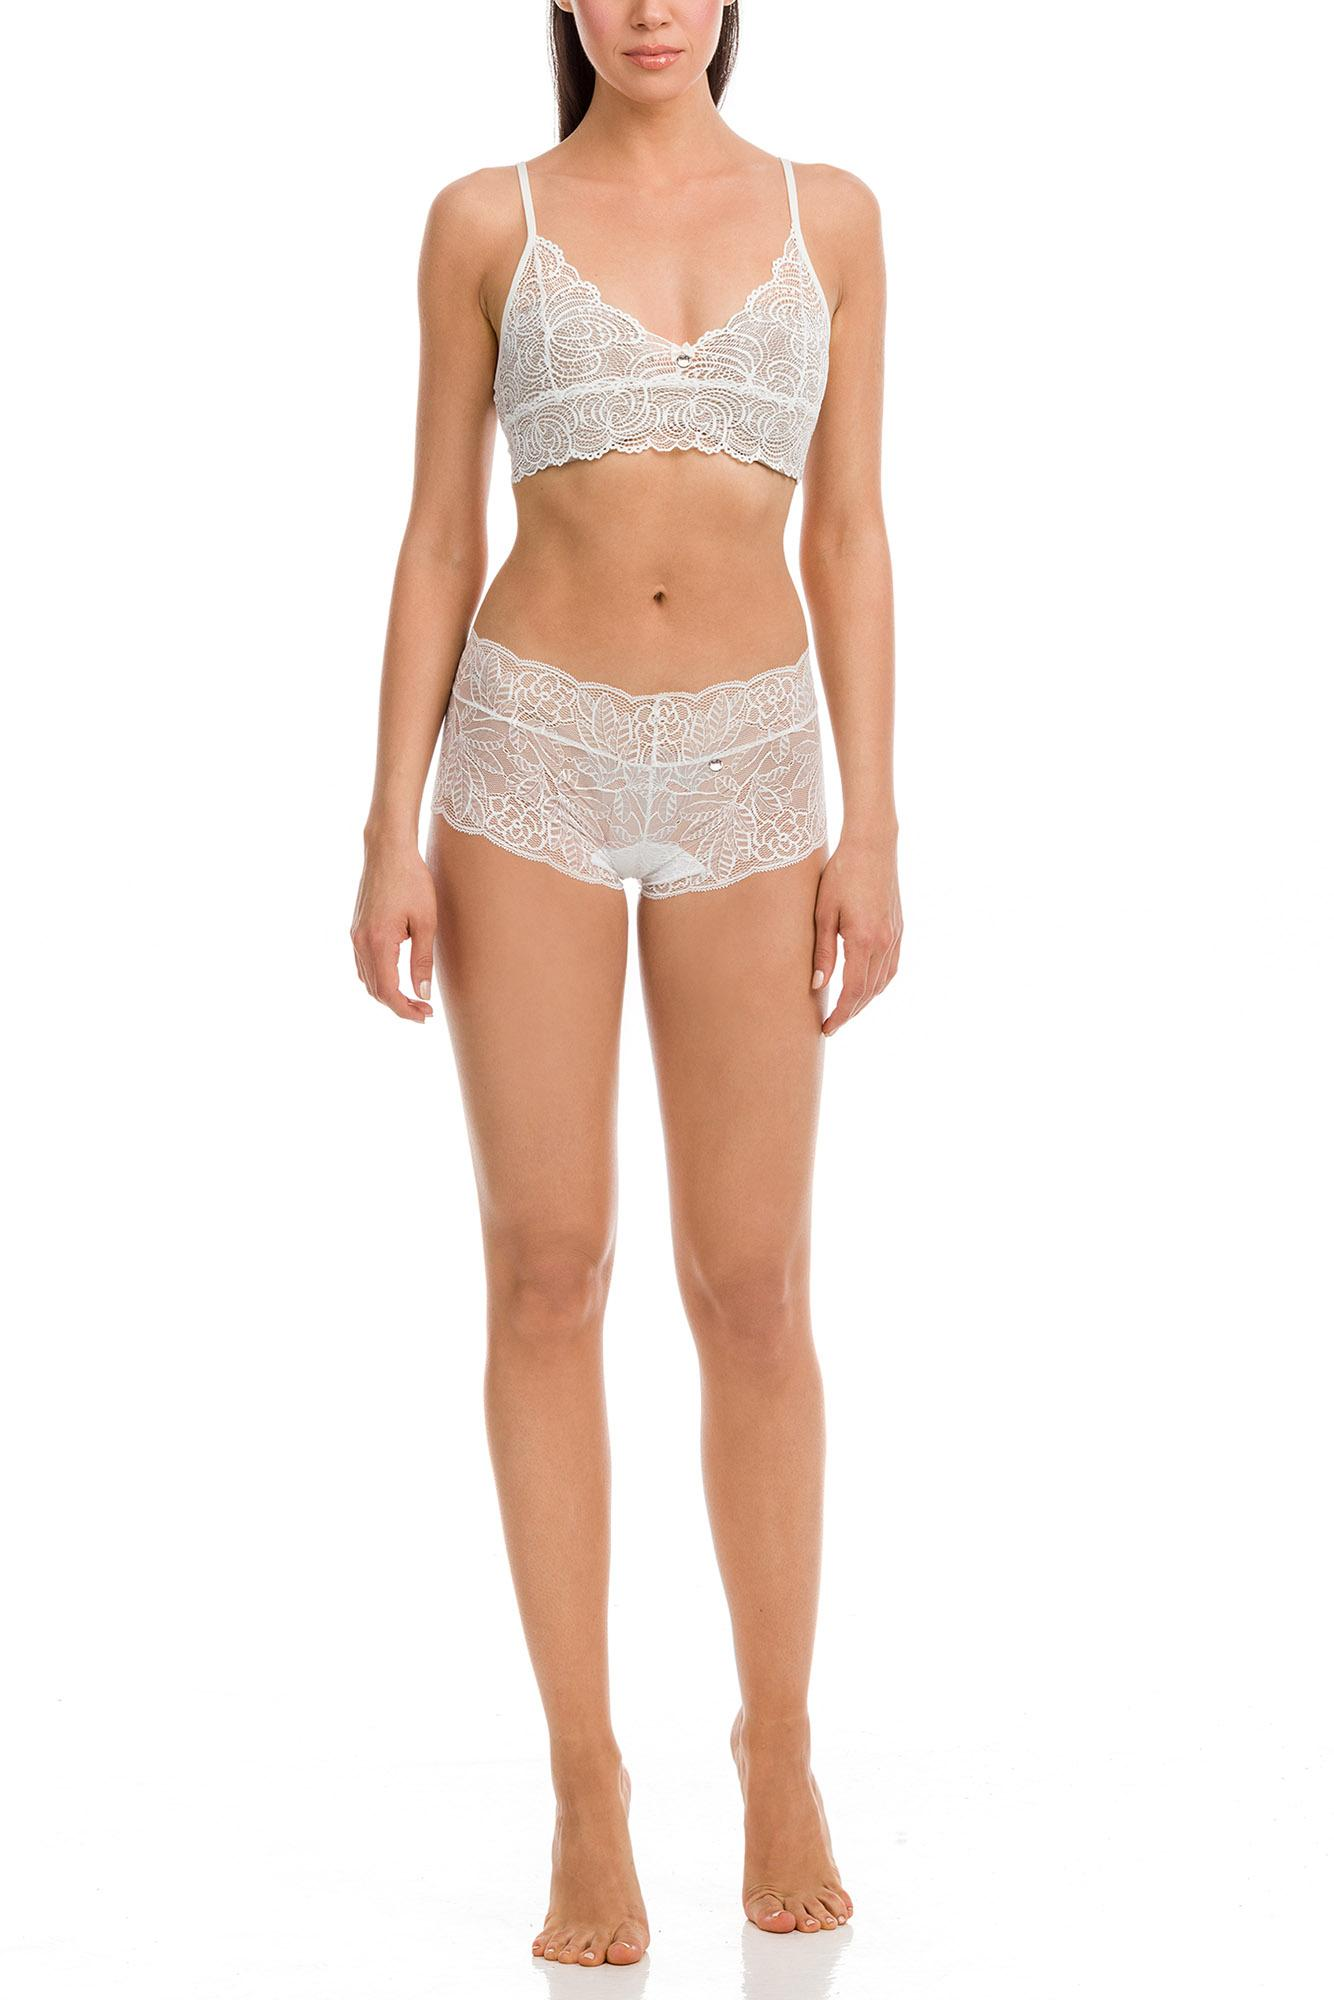 Women's Lace Bralette